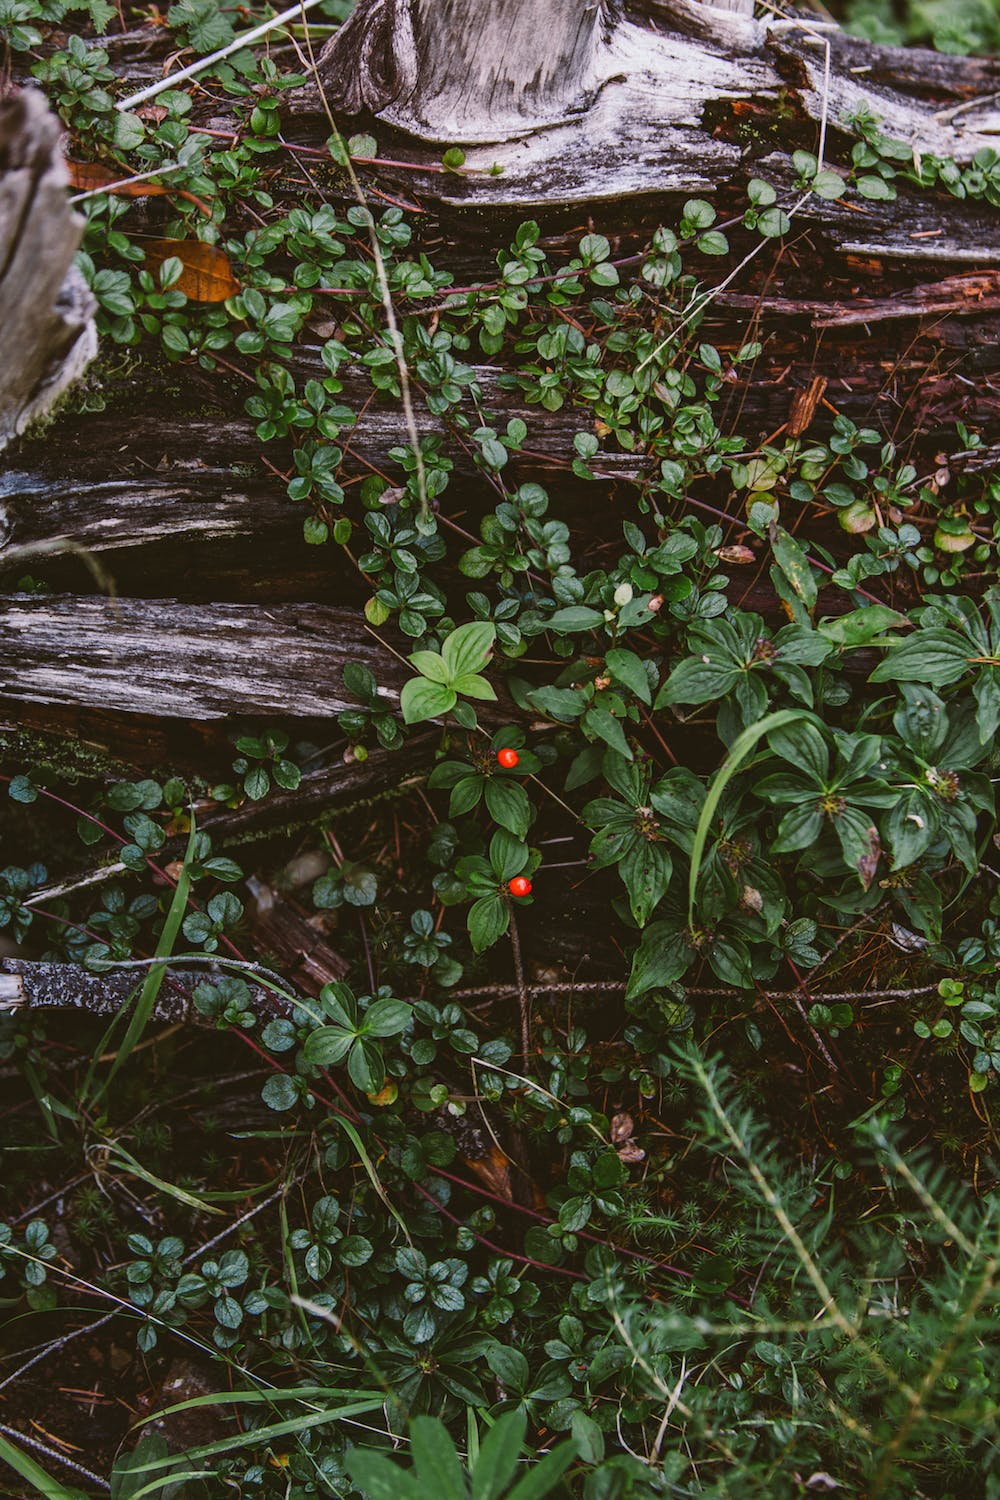 Filson Life - Wild Berries while hunting